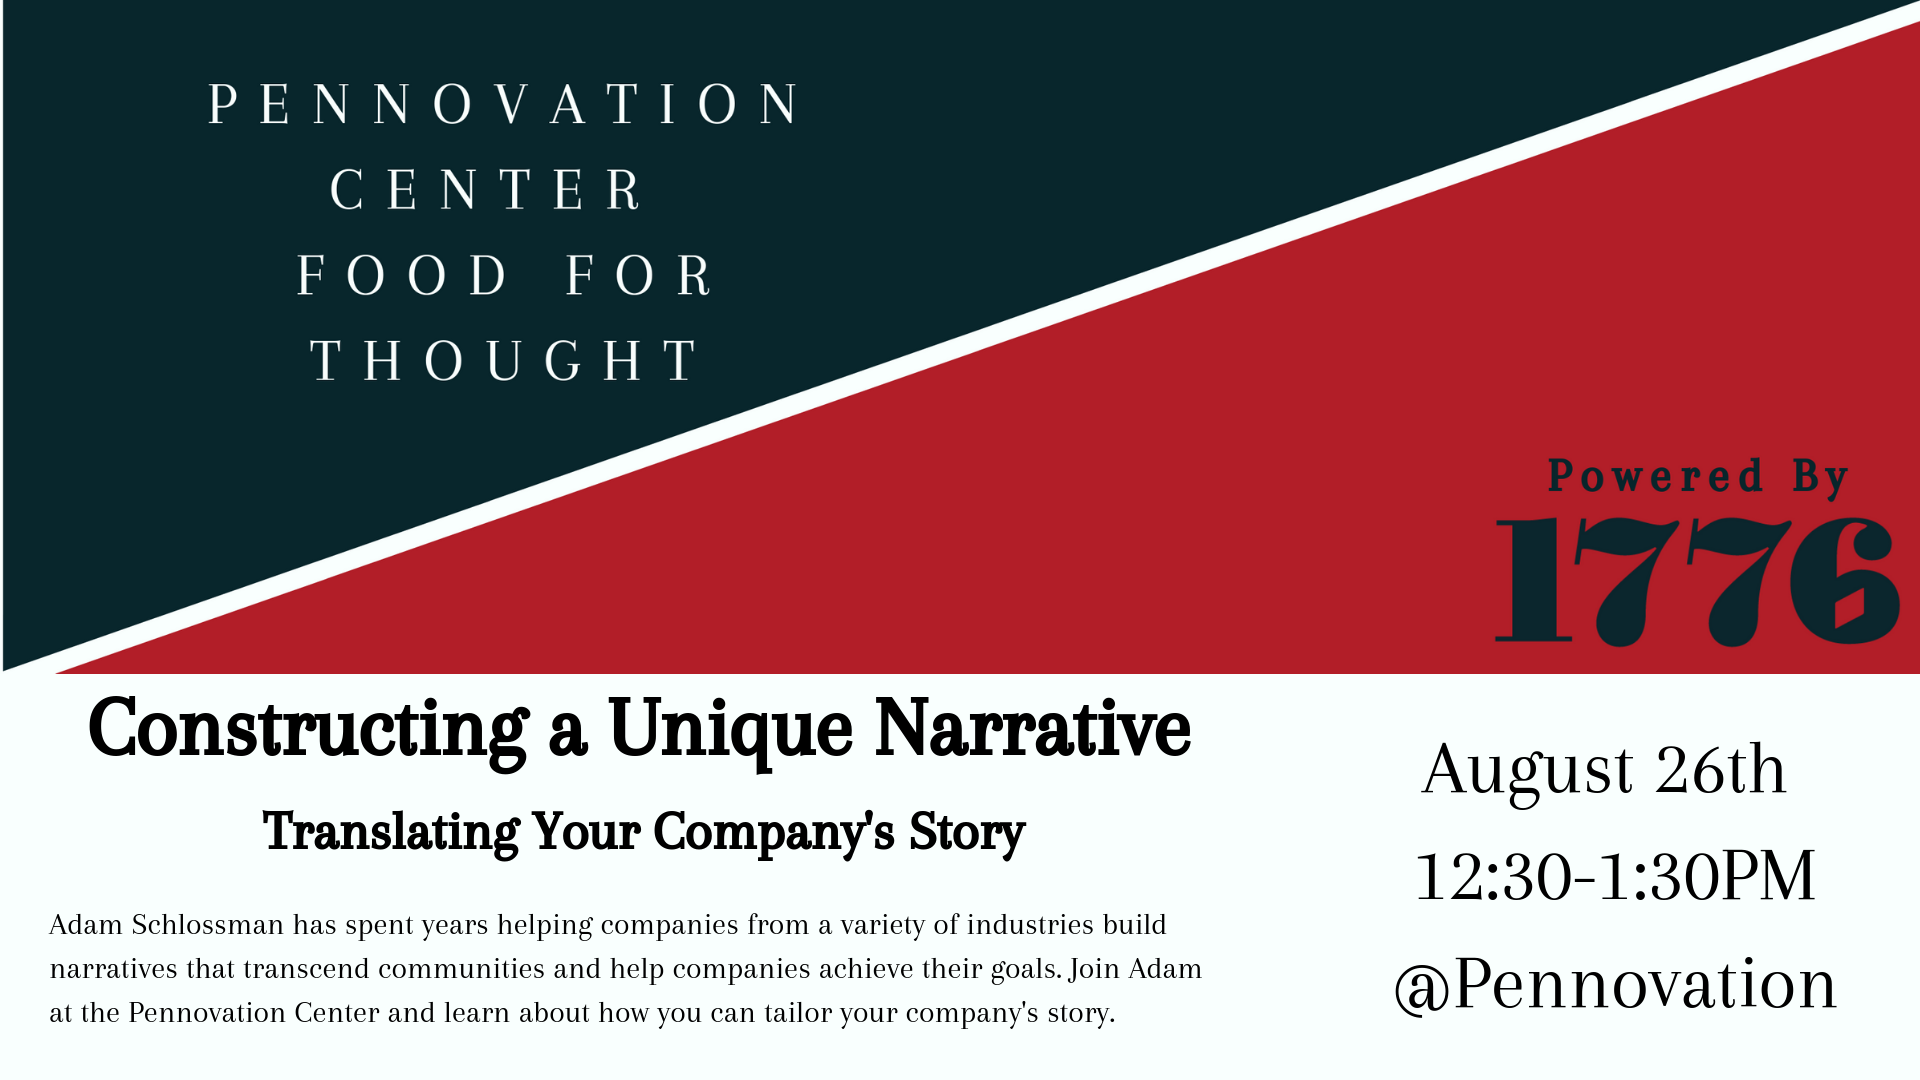 Pennovation Center Food for Thought August 26, 2019